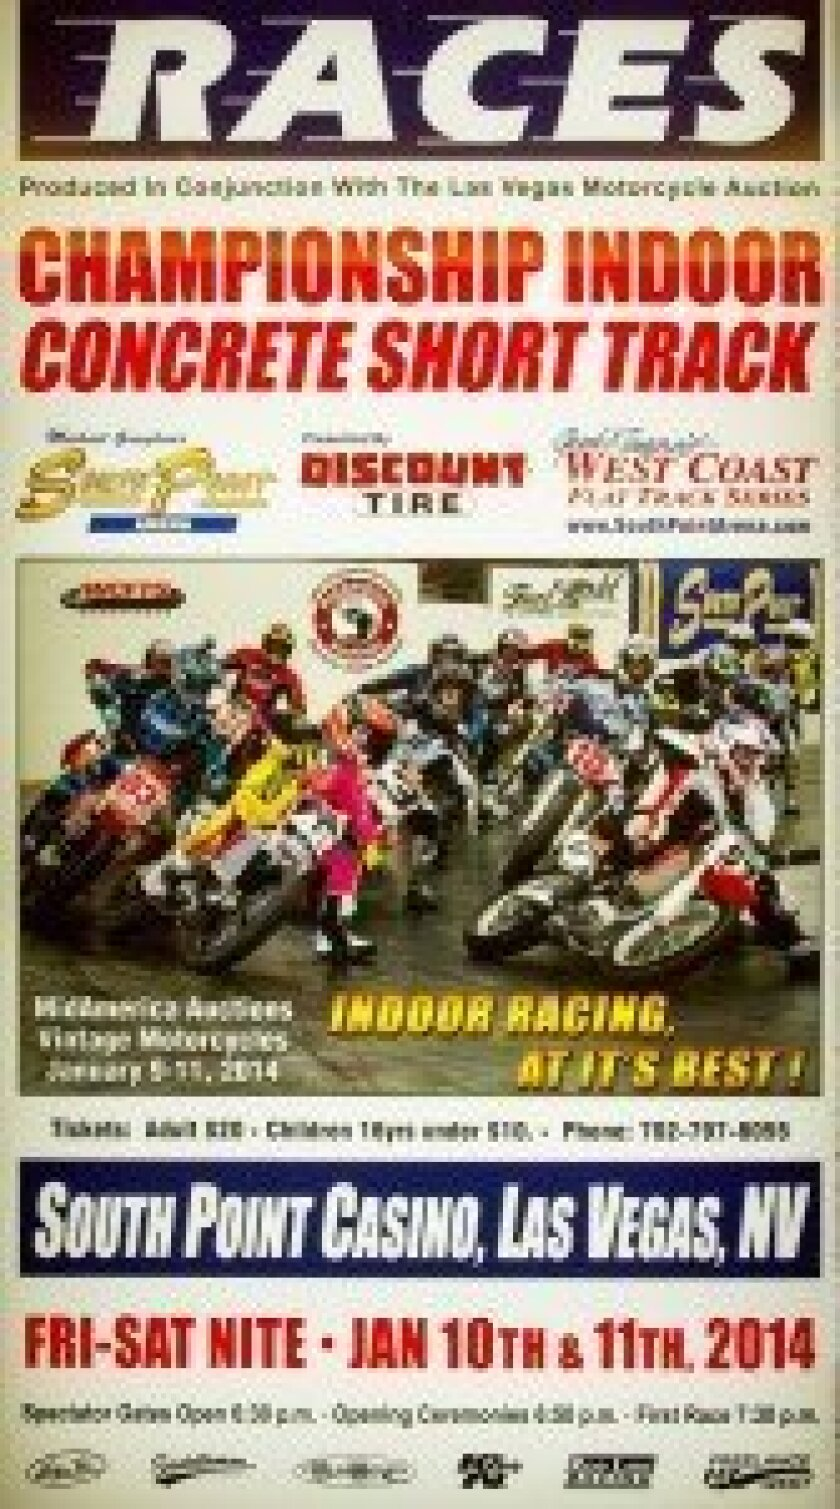 Flat track motorcycle racing at the South Point, Las Vegas